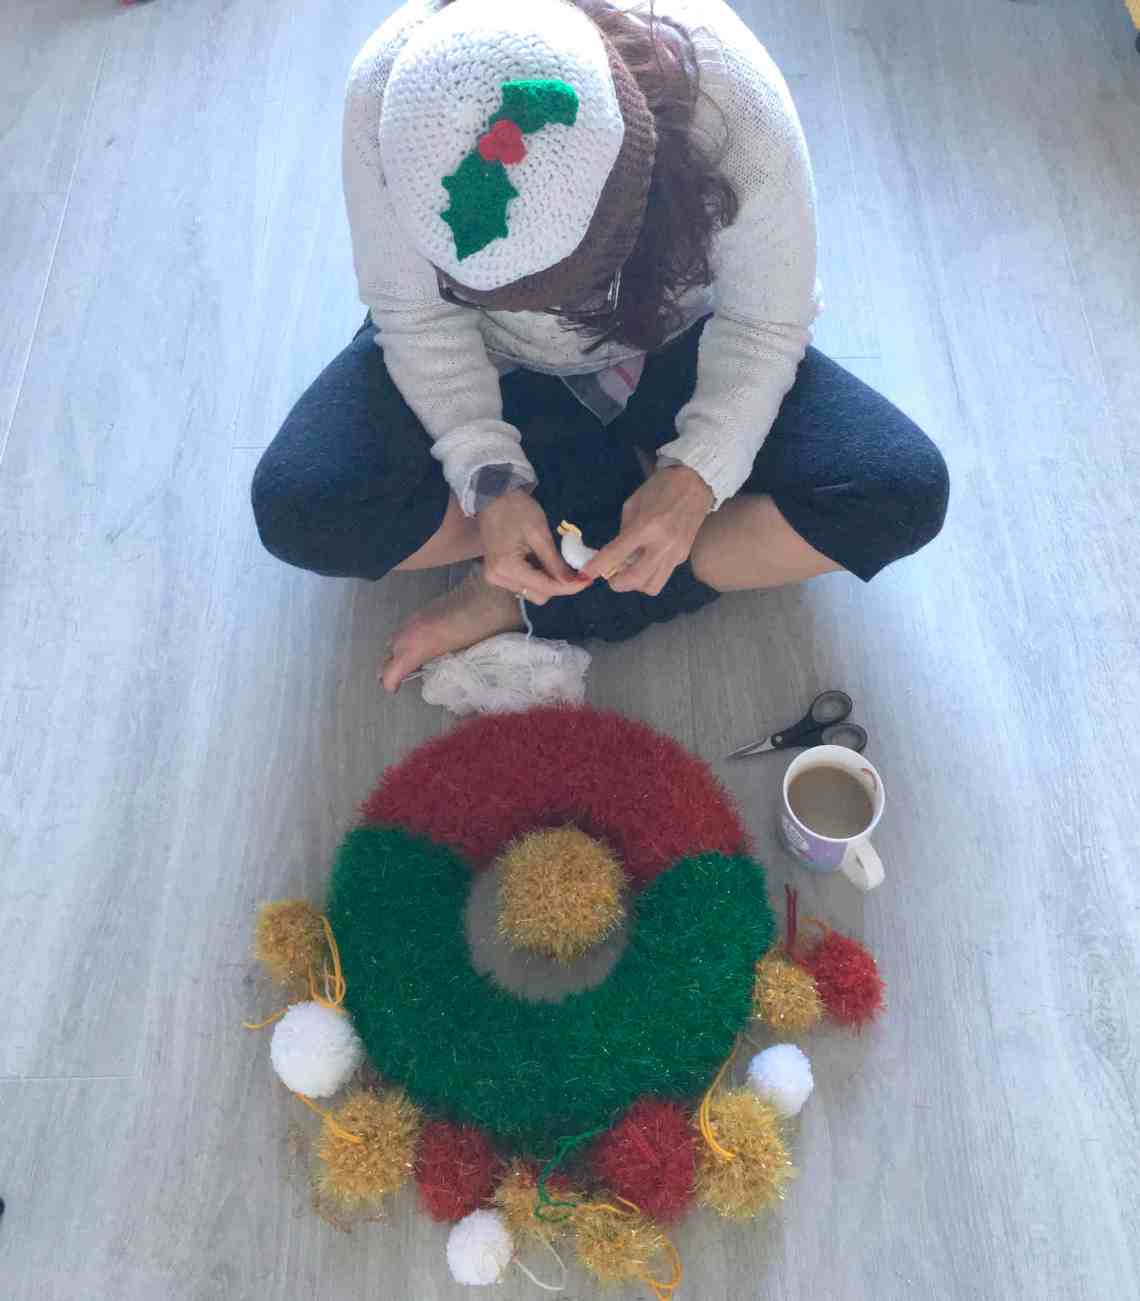 dora does making a festive christmas crochet tinsel wreath